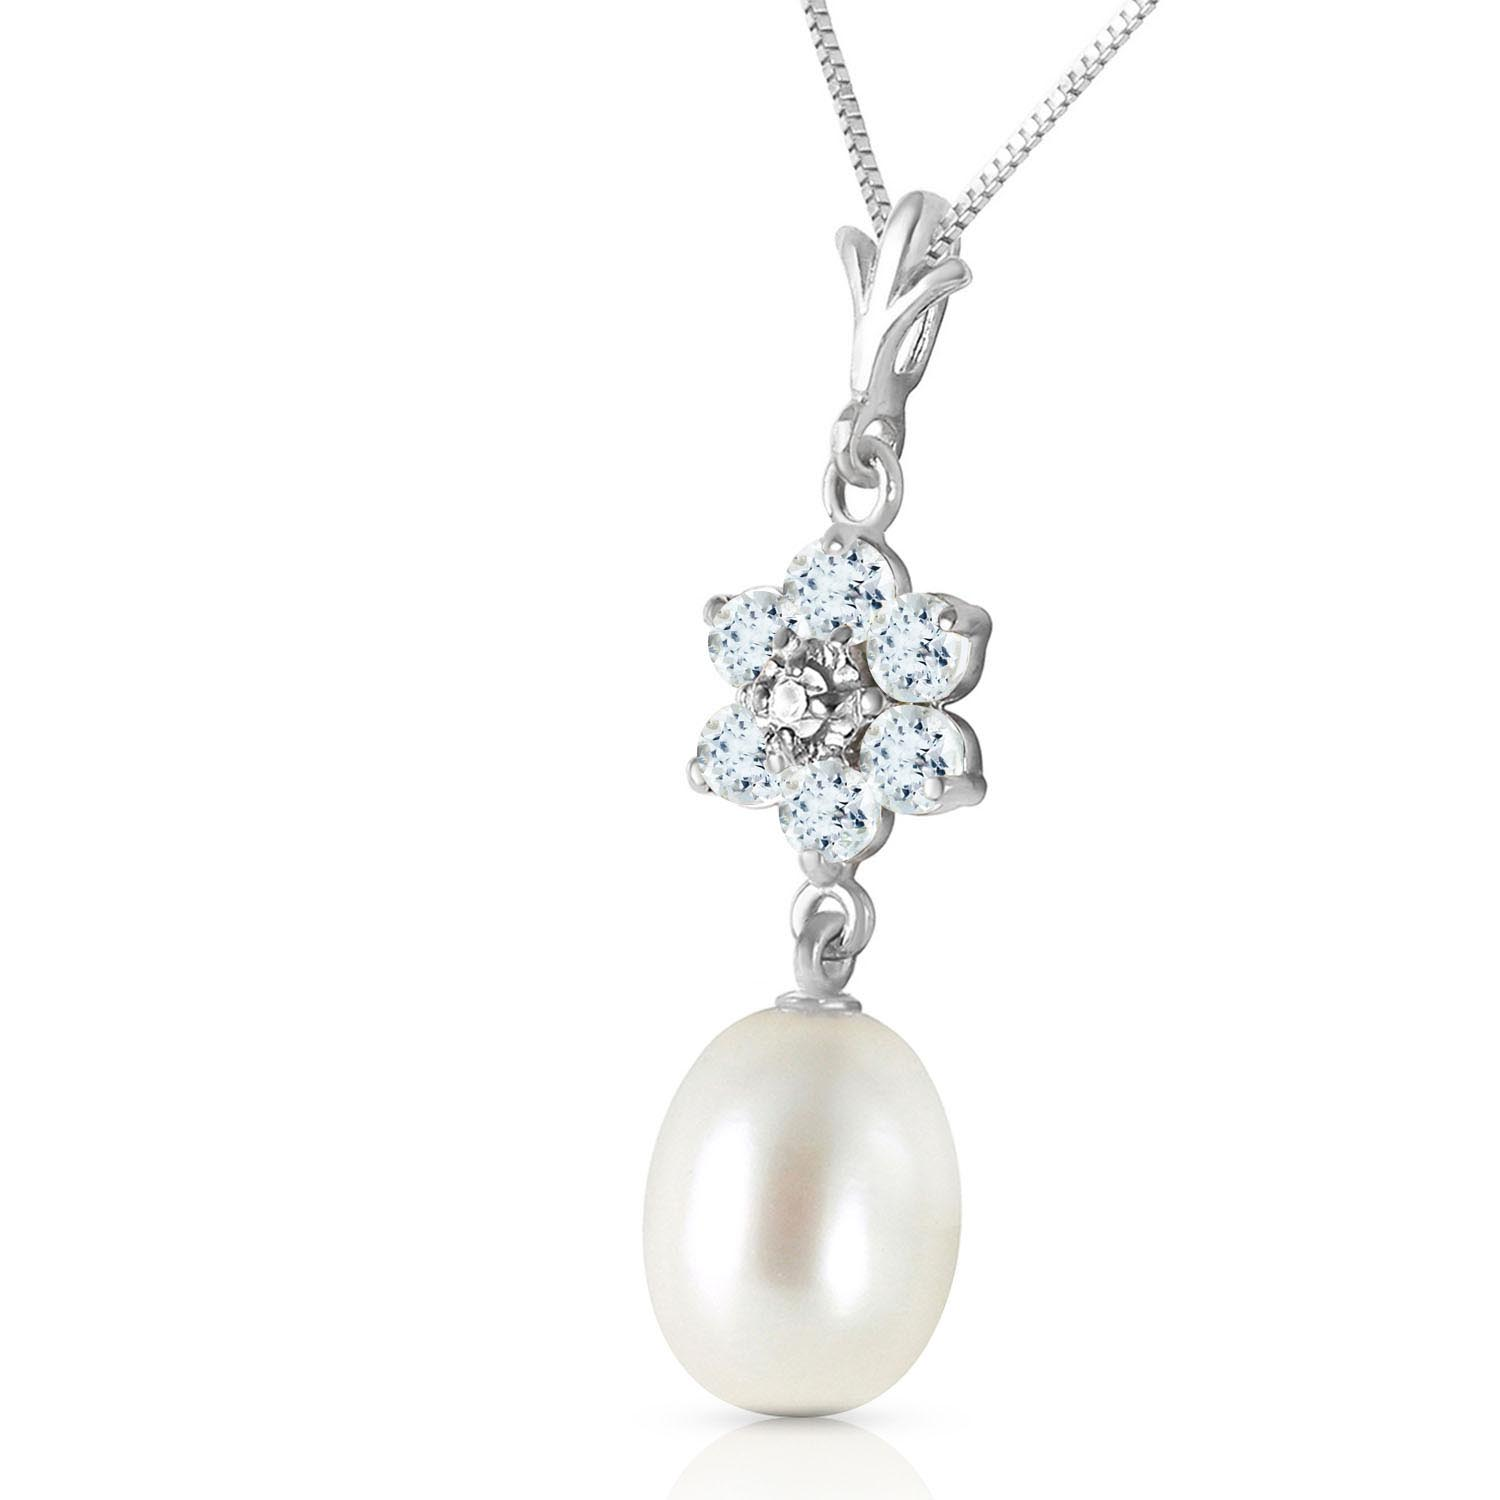 Pearl, Aquamarine and Diamond Daisy Pendant Necklace 4.5ctw in 14K White Gold